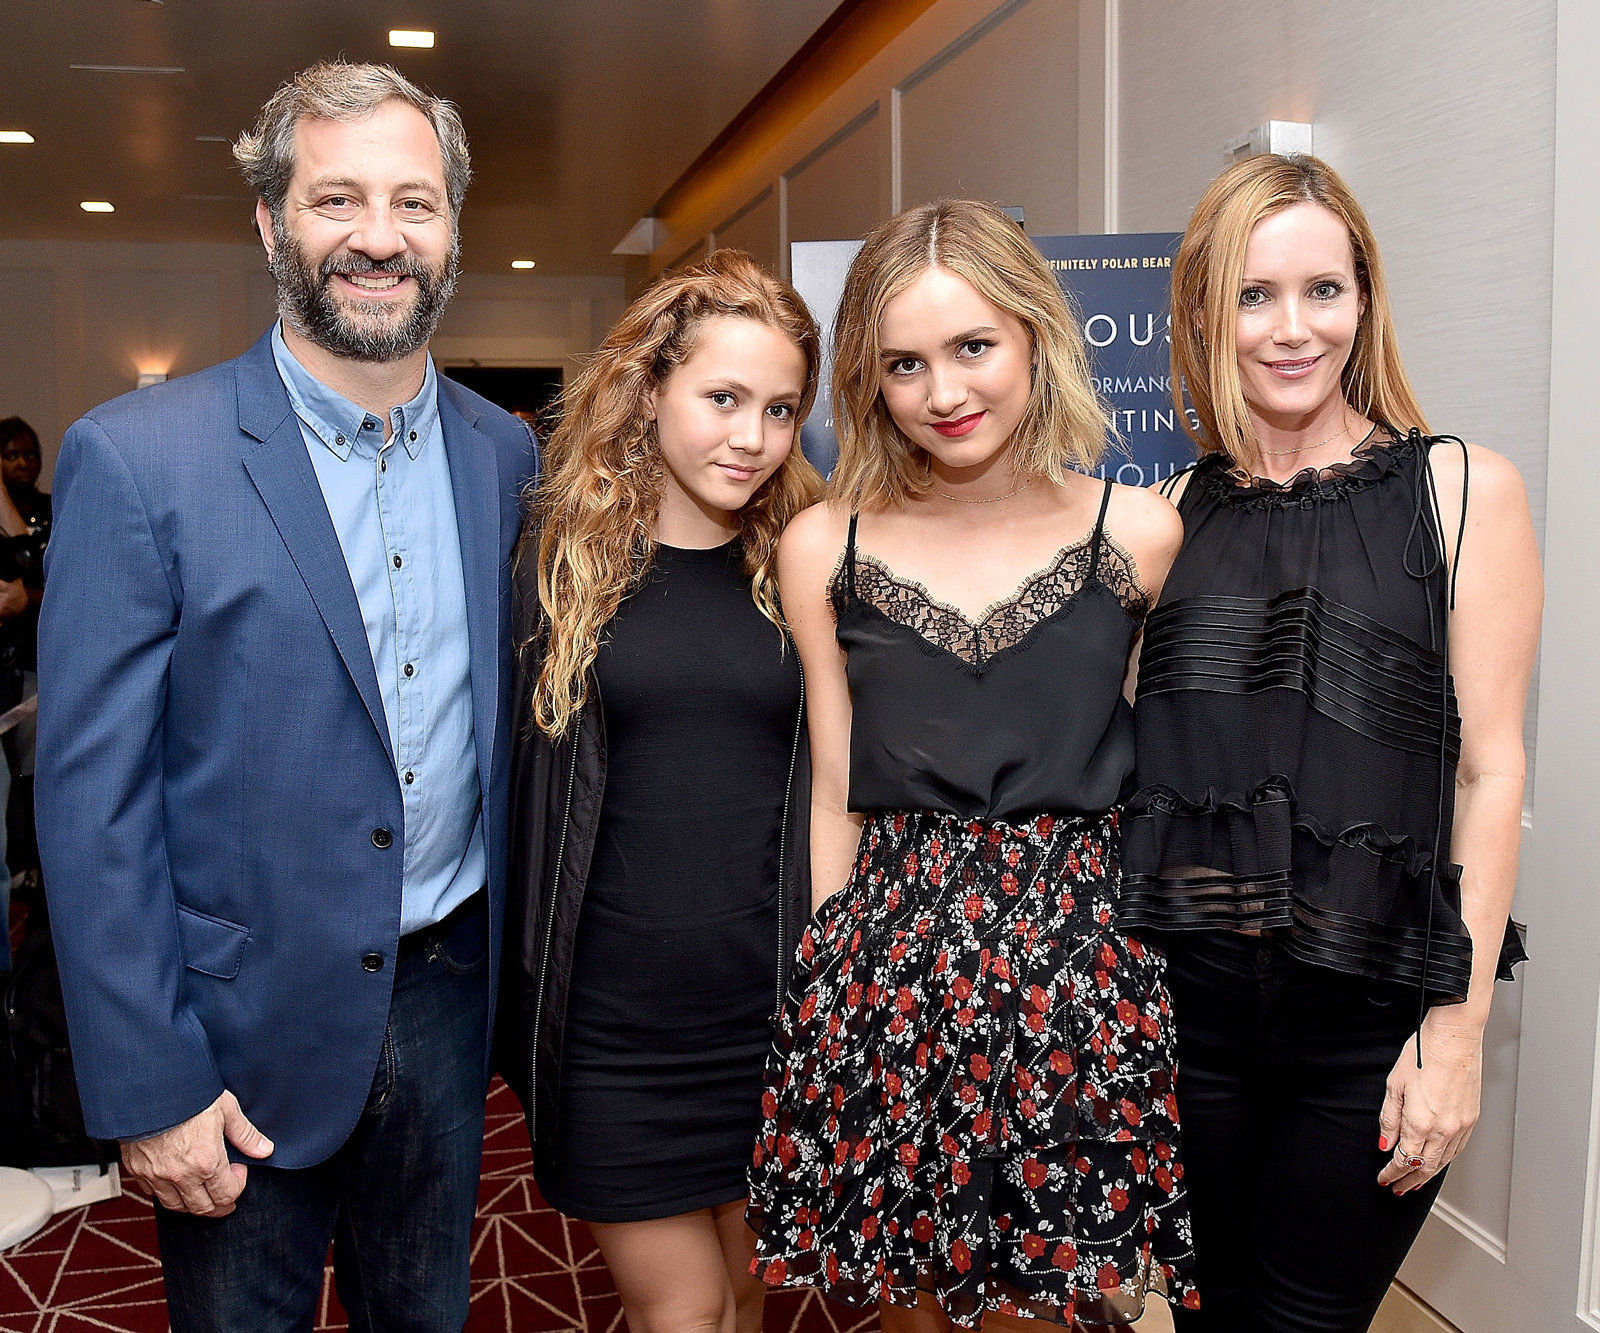 Judd Apatow and Leslie Mann - Embed